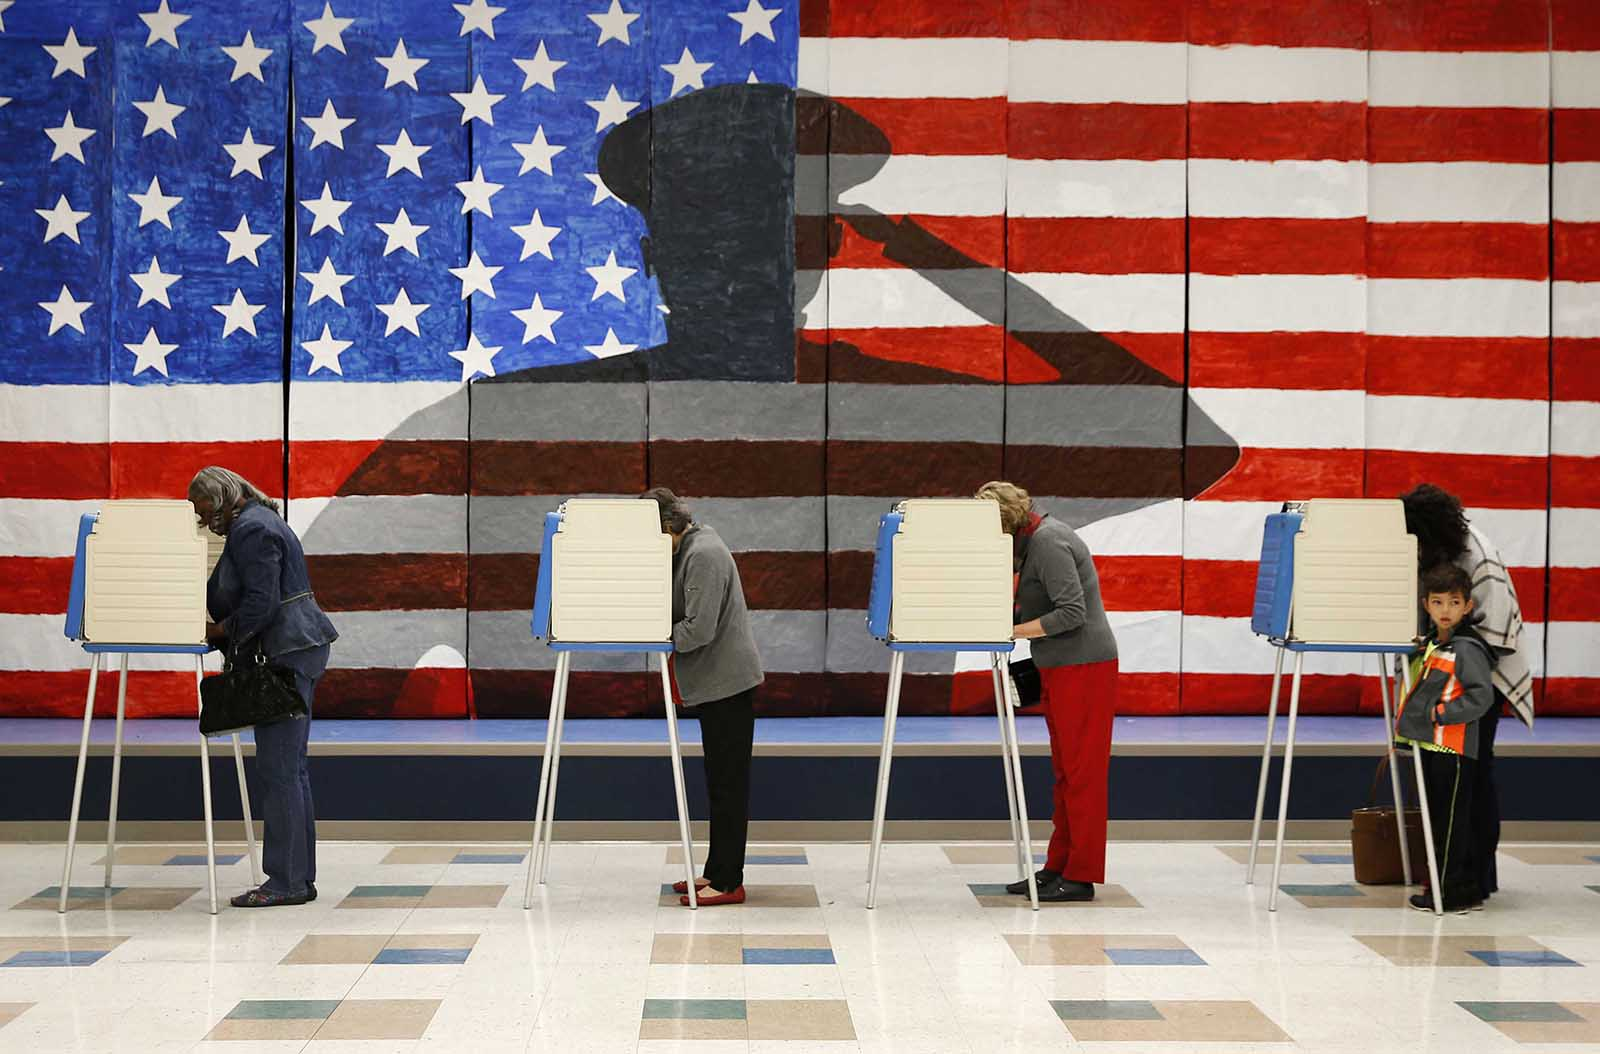 Voters line up to cast their ballots at Robious Elementary School in Richmond, Va. on Nov. 8, 2016. The mural in the background was painted by 3rd and 4th graders at the school in preparation for Veterans Day.